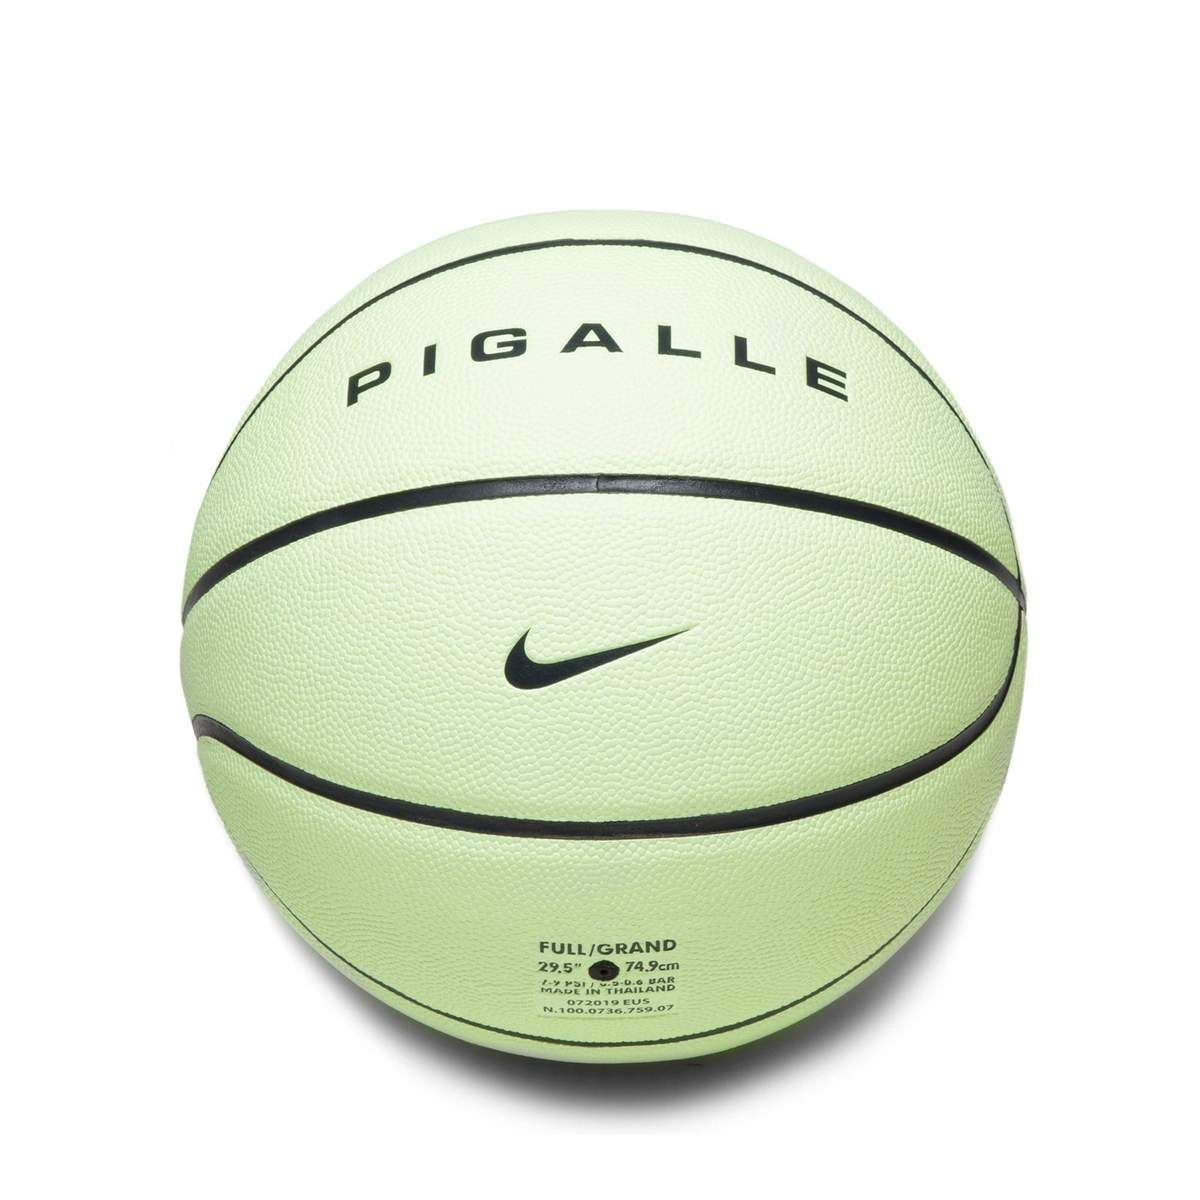 monitor fuga datos  Nike x Pigalle Basketball in 2020 | Pigalle basketball, Basketball,  Astrology